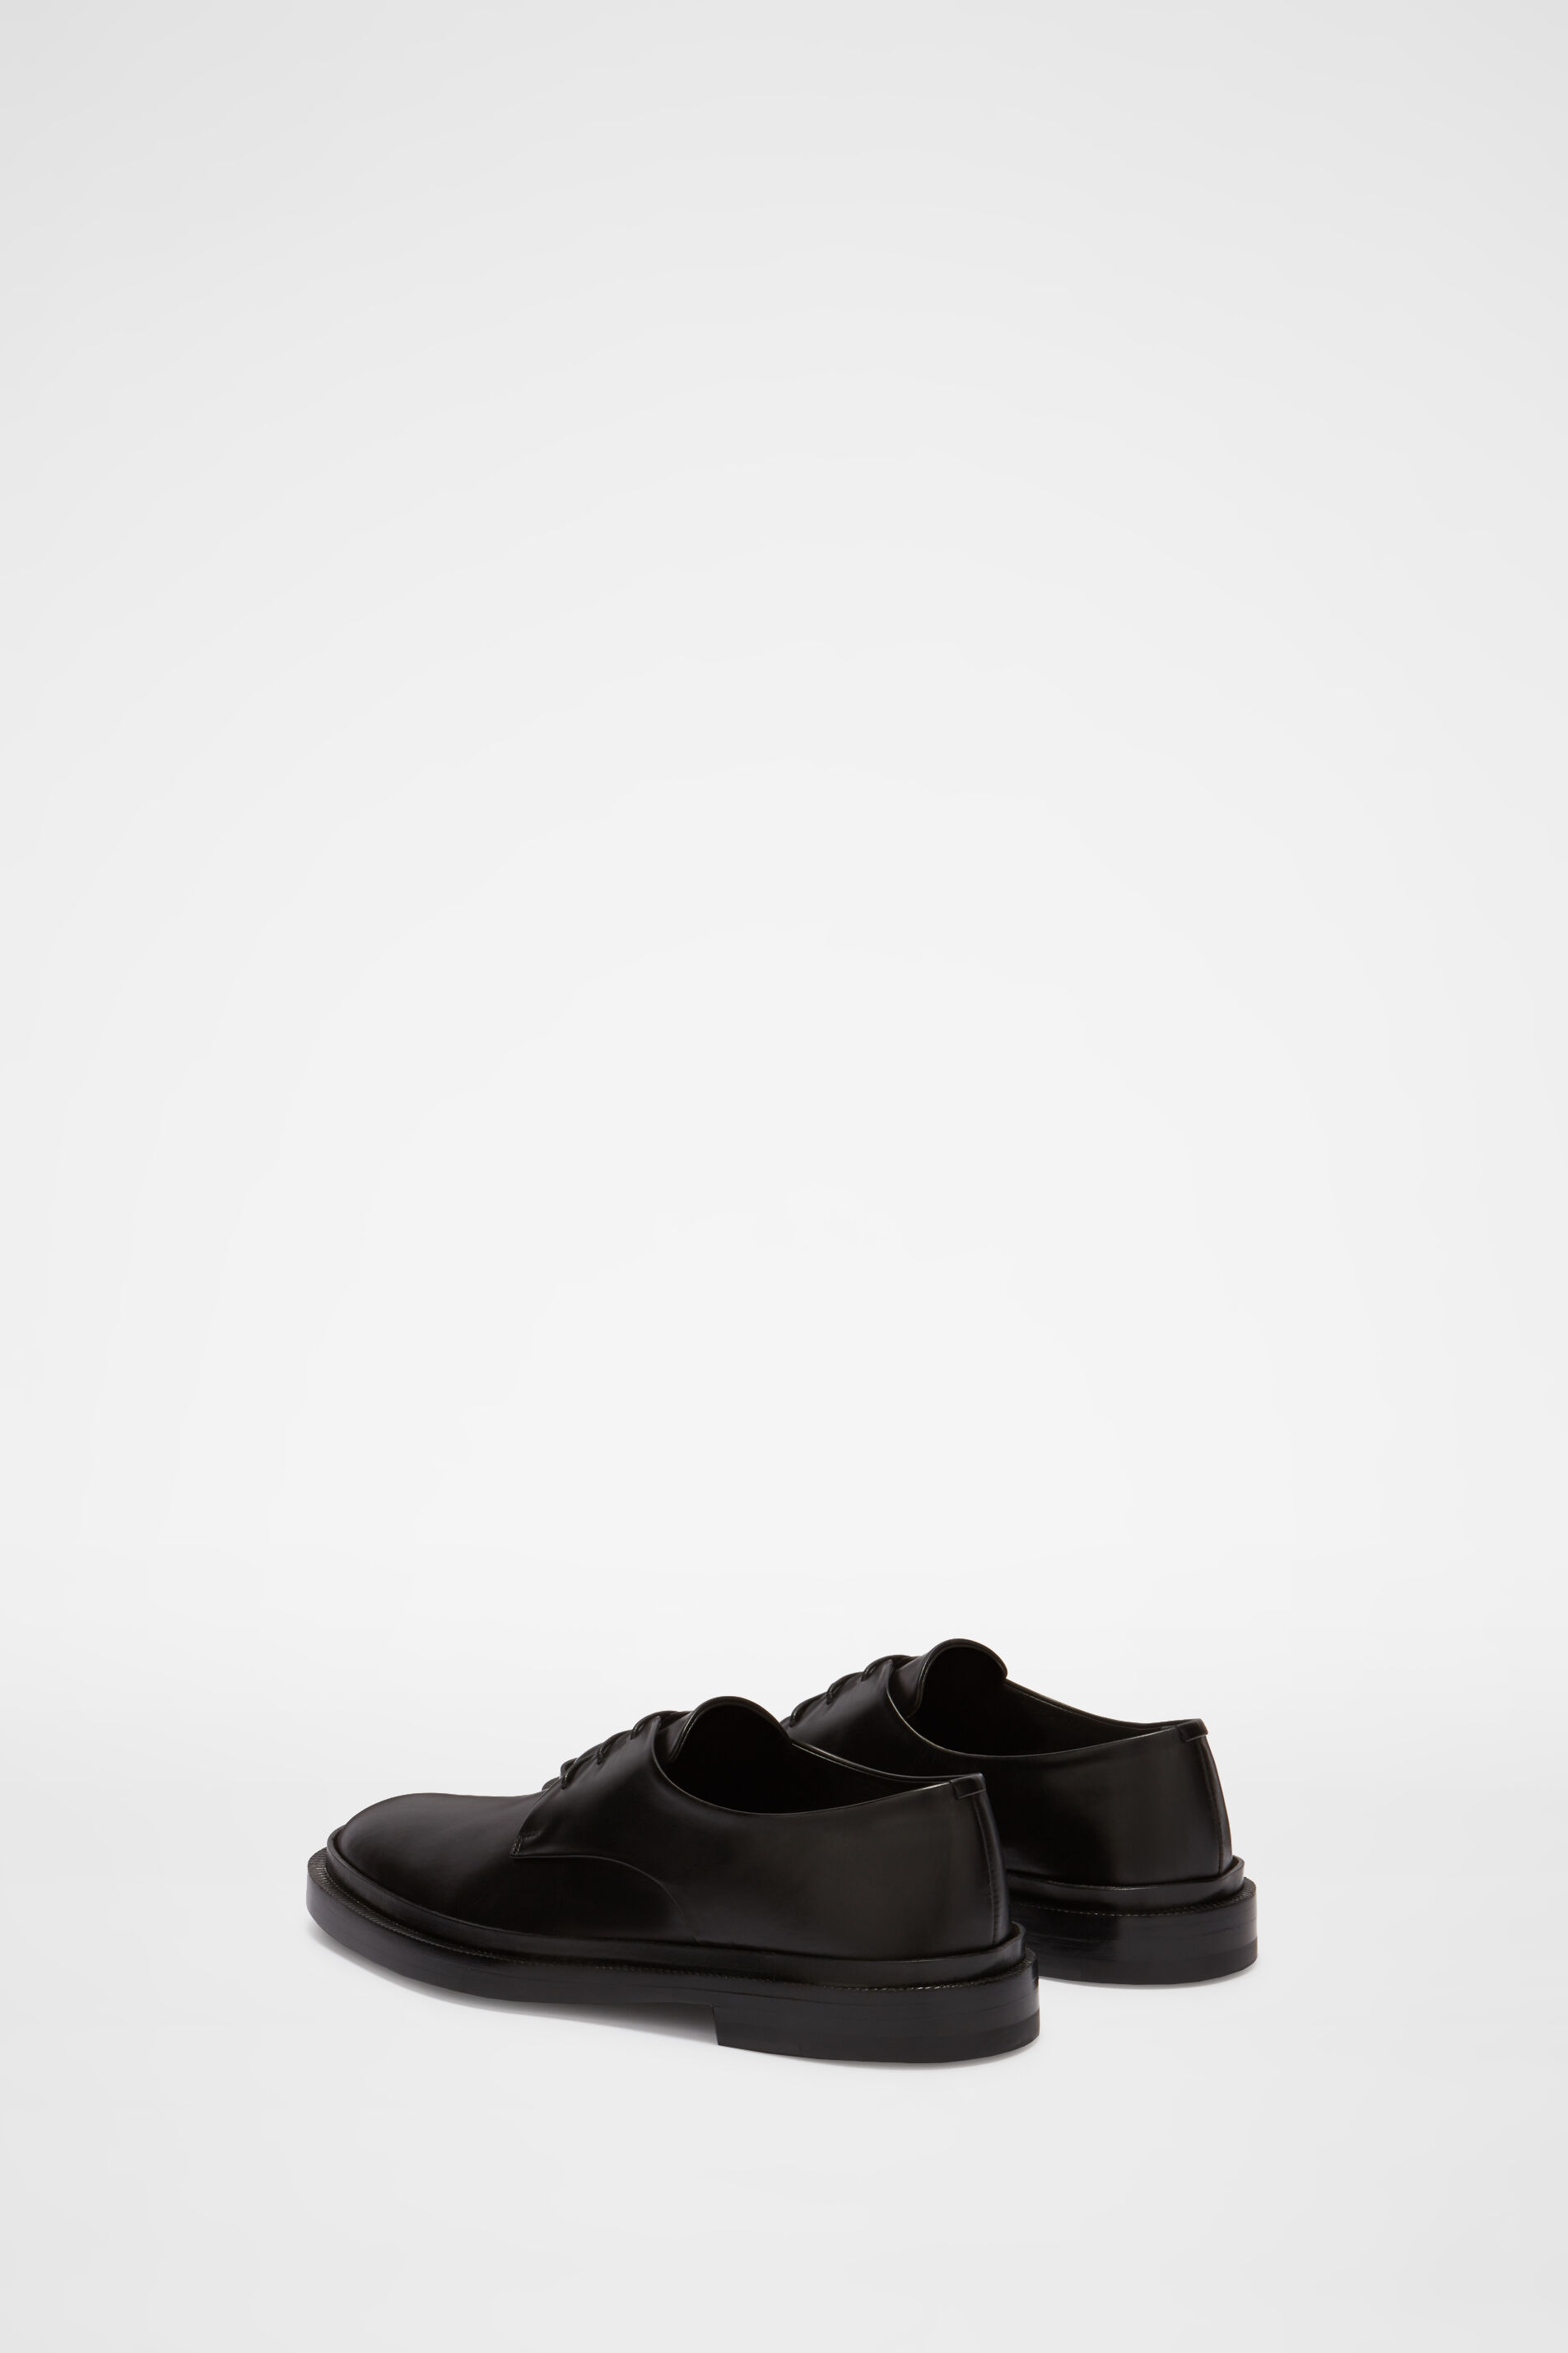 Shoes, black, large